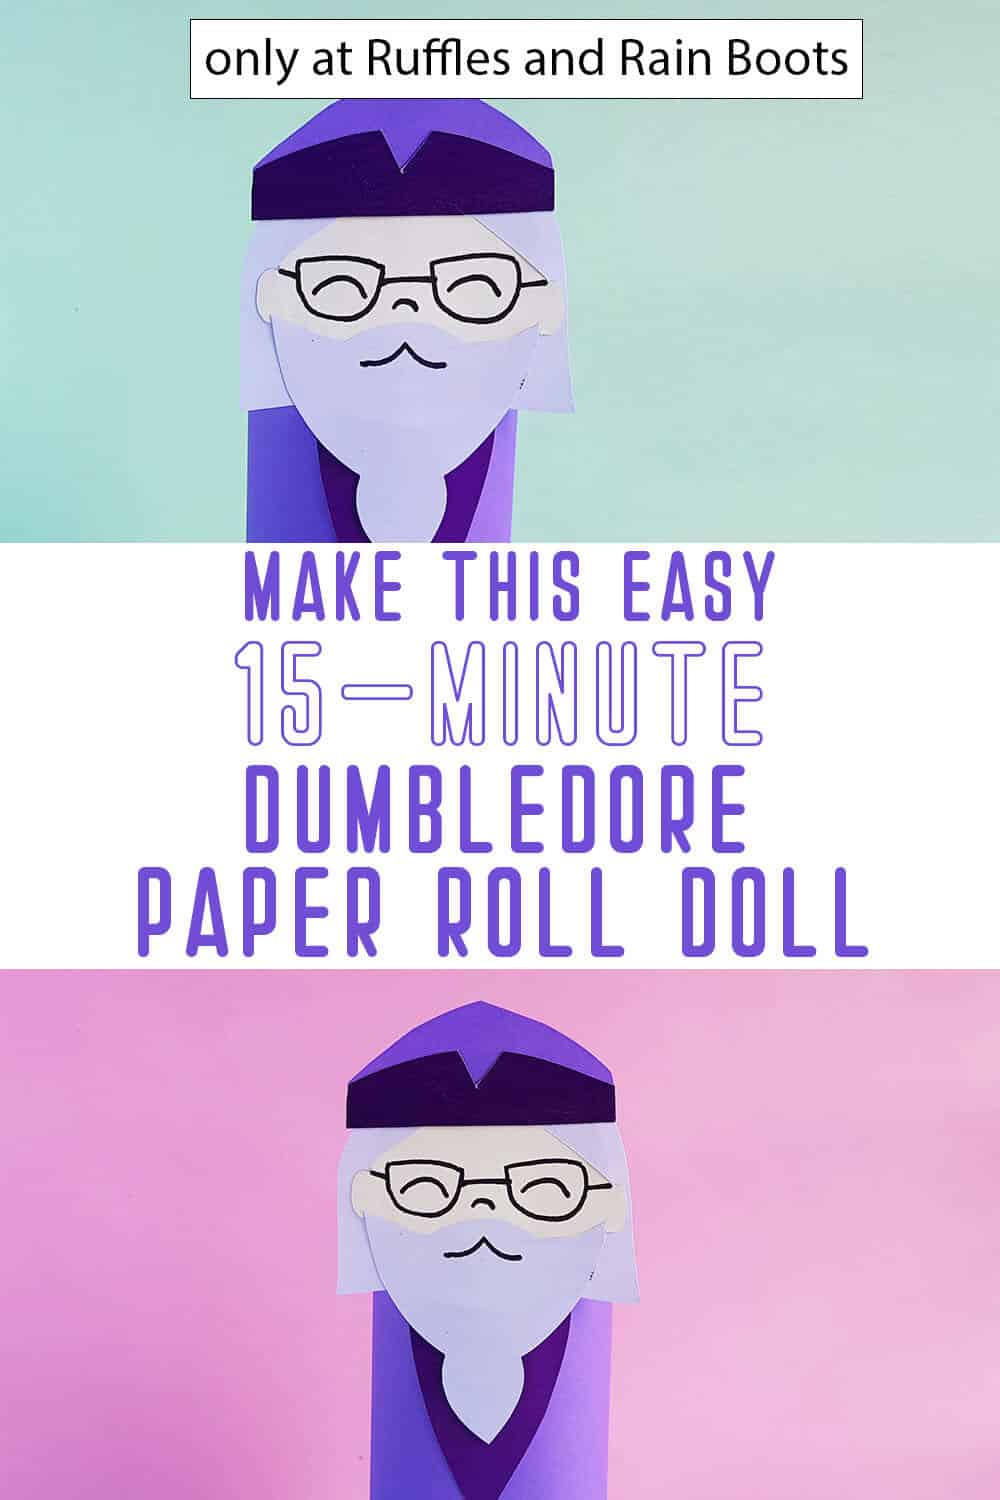 photo collage of paper roll dumbledore doll with text which reads make this easy 15-minute dumbledore paper roll doll